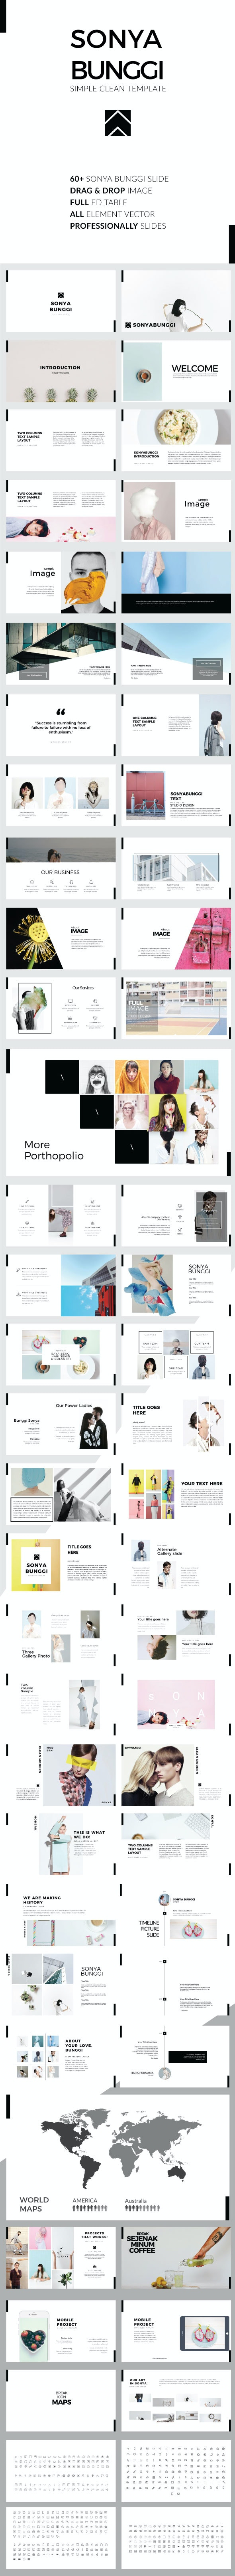 Sonya Bunggi - Simple Clean Keynote Template - Business Keynote Templates